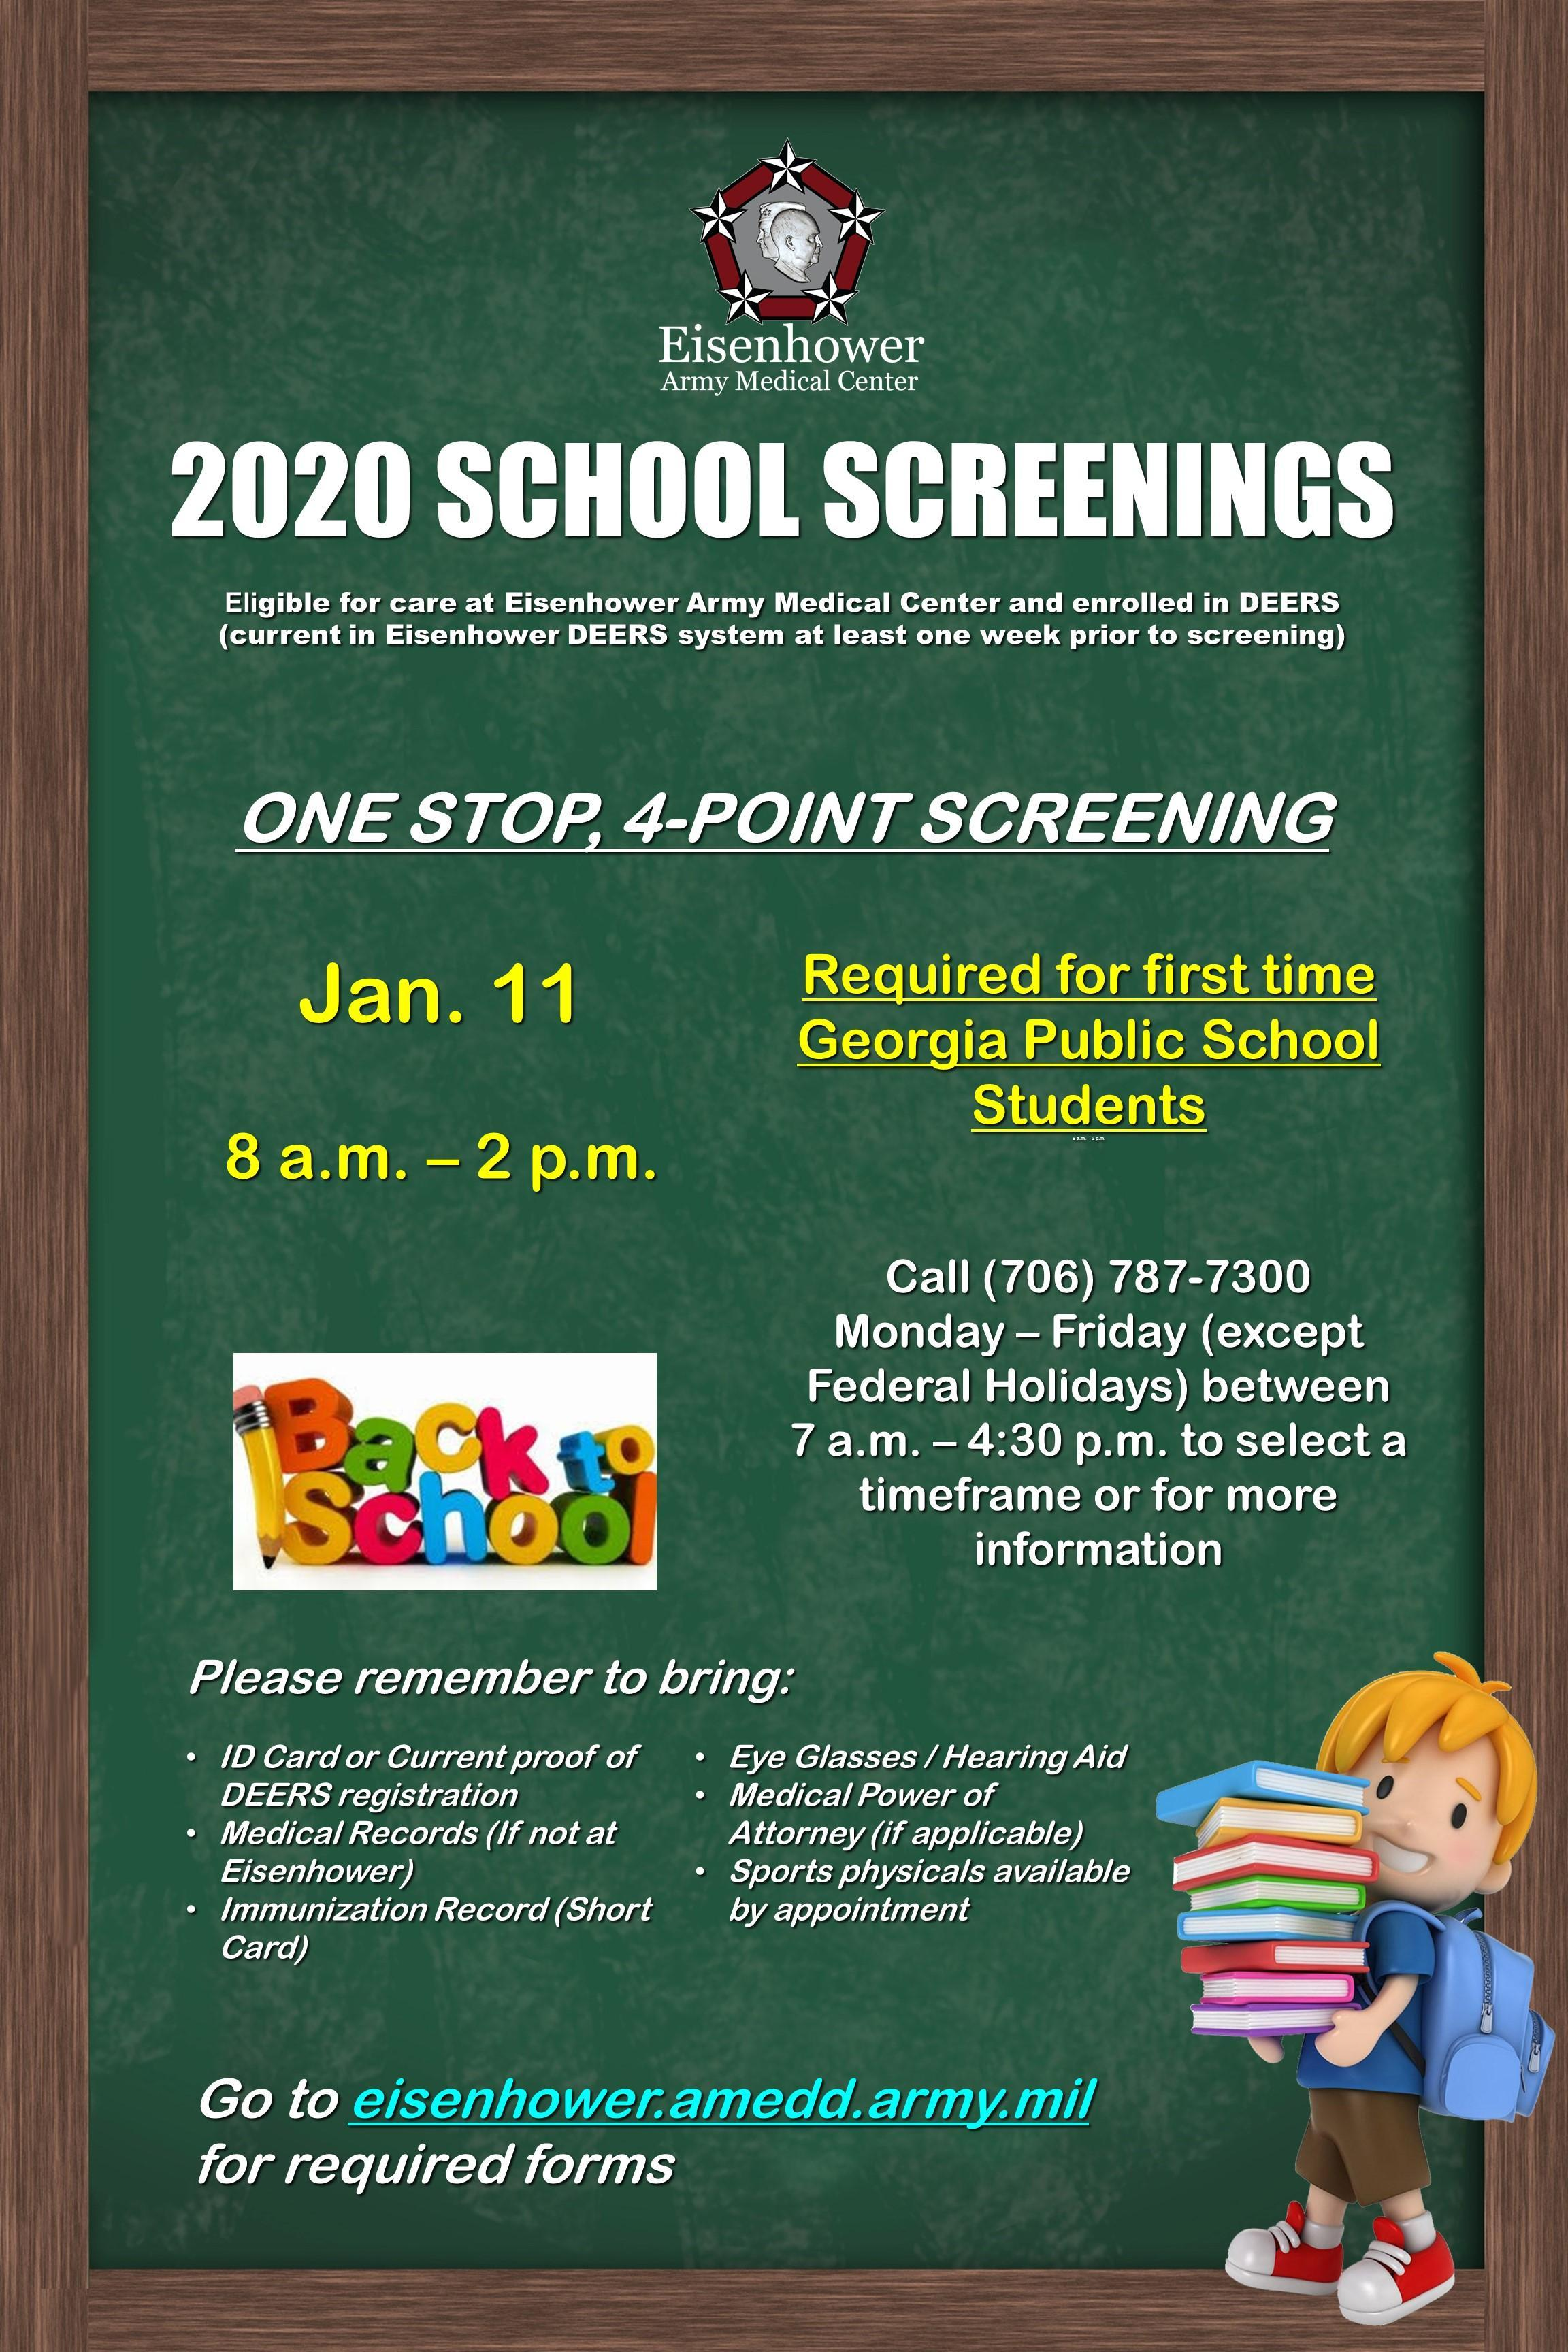 info flyer for school screenings for military families